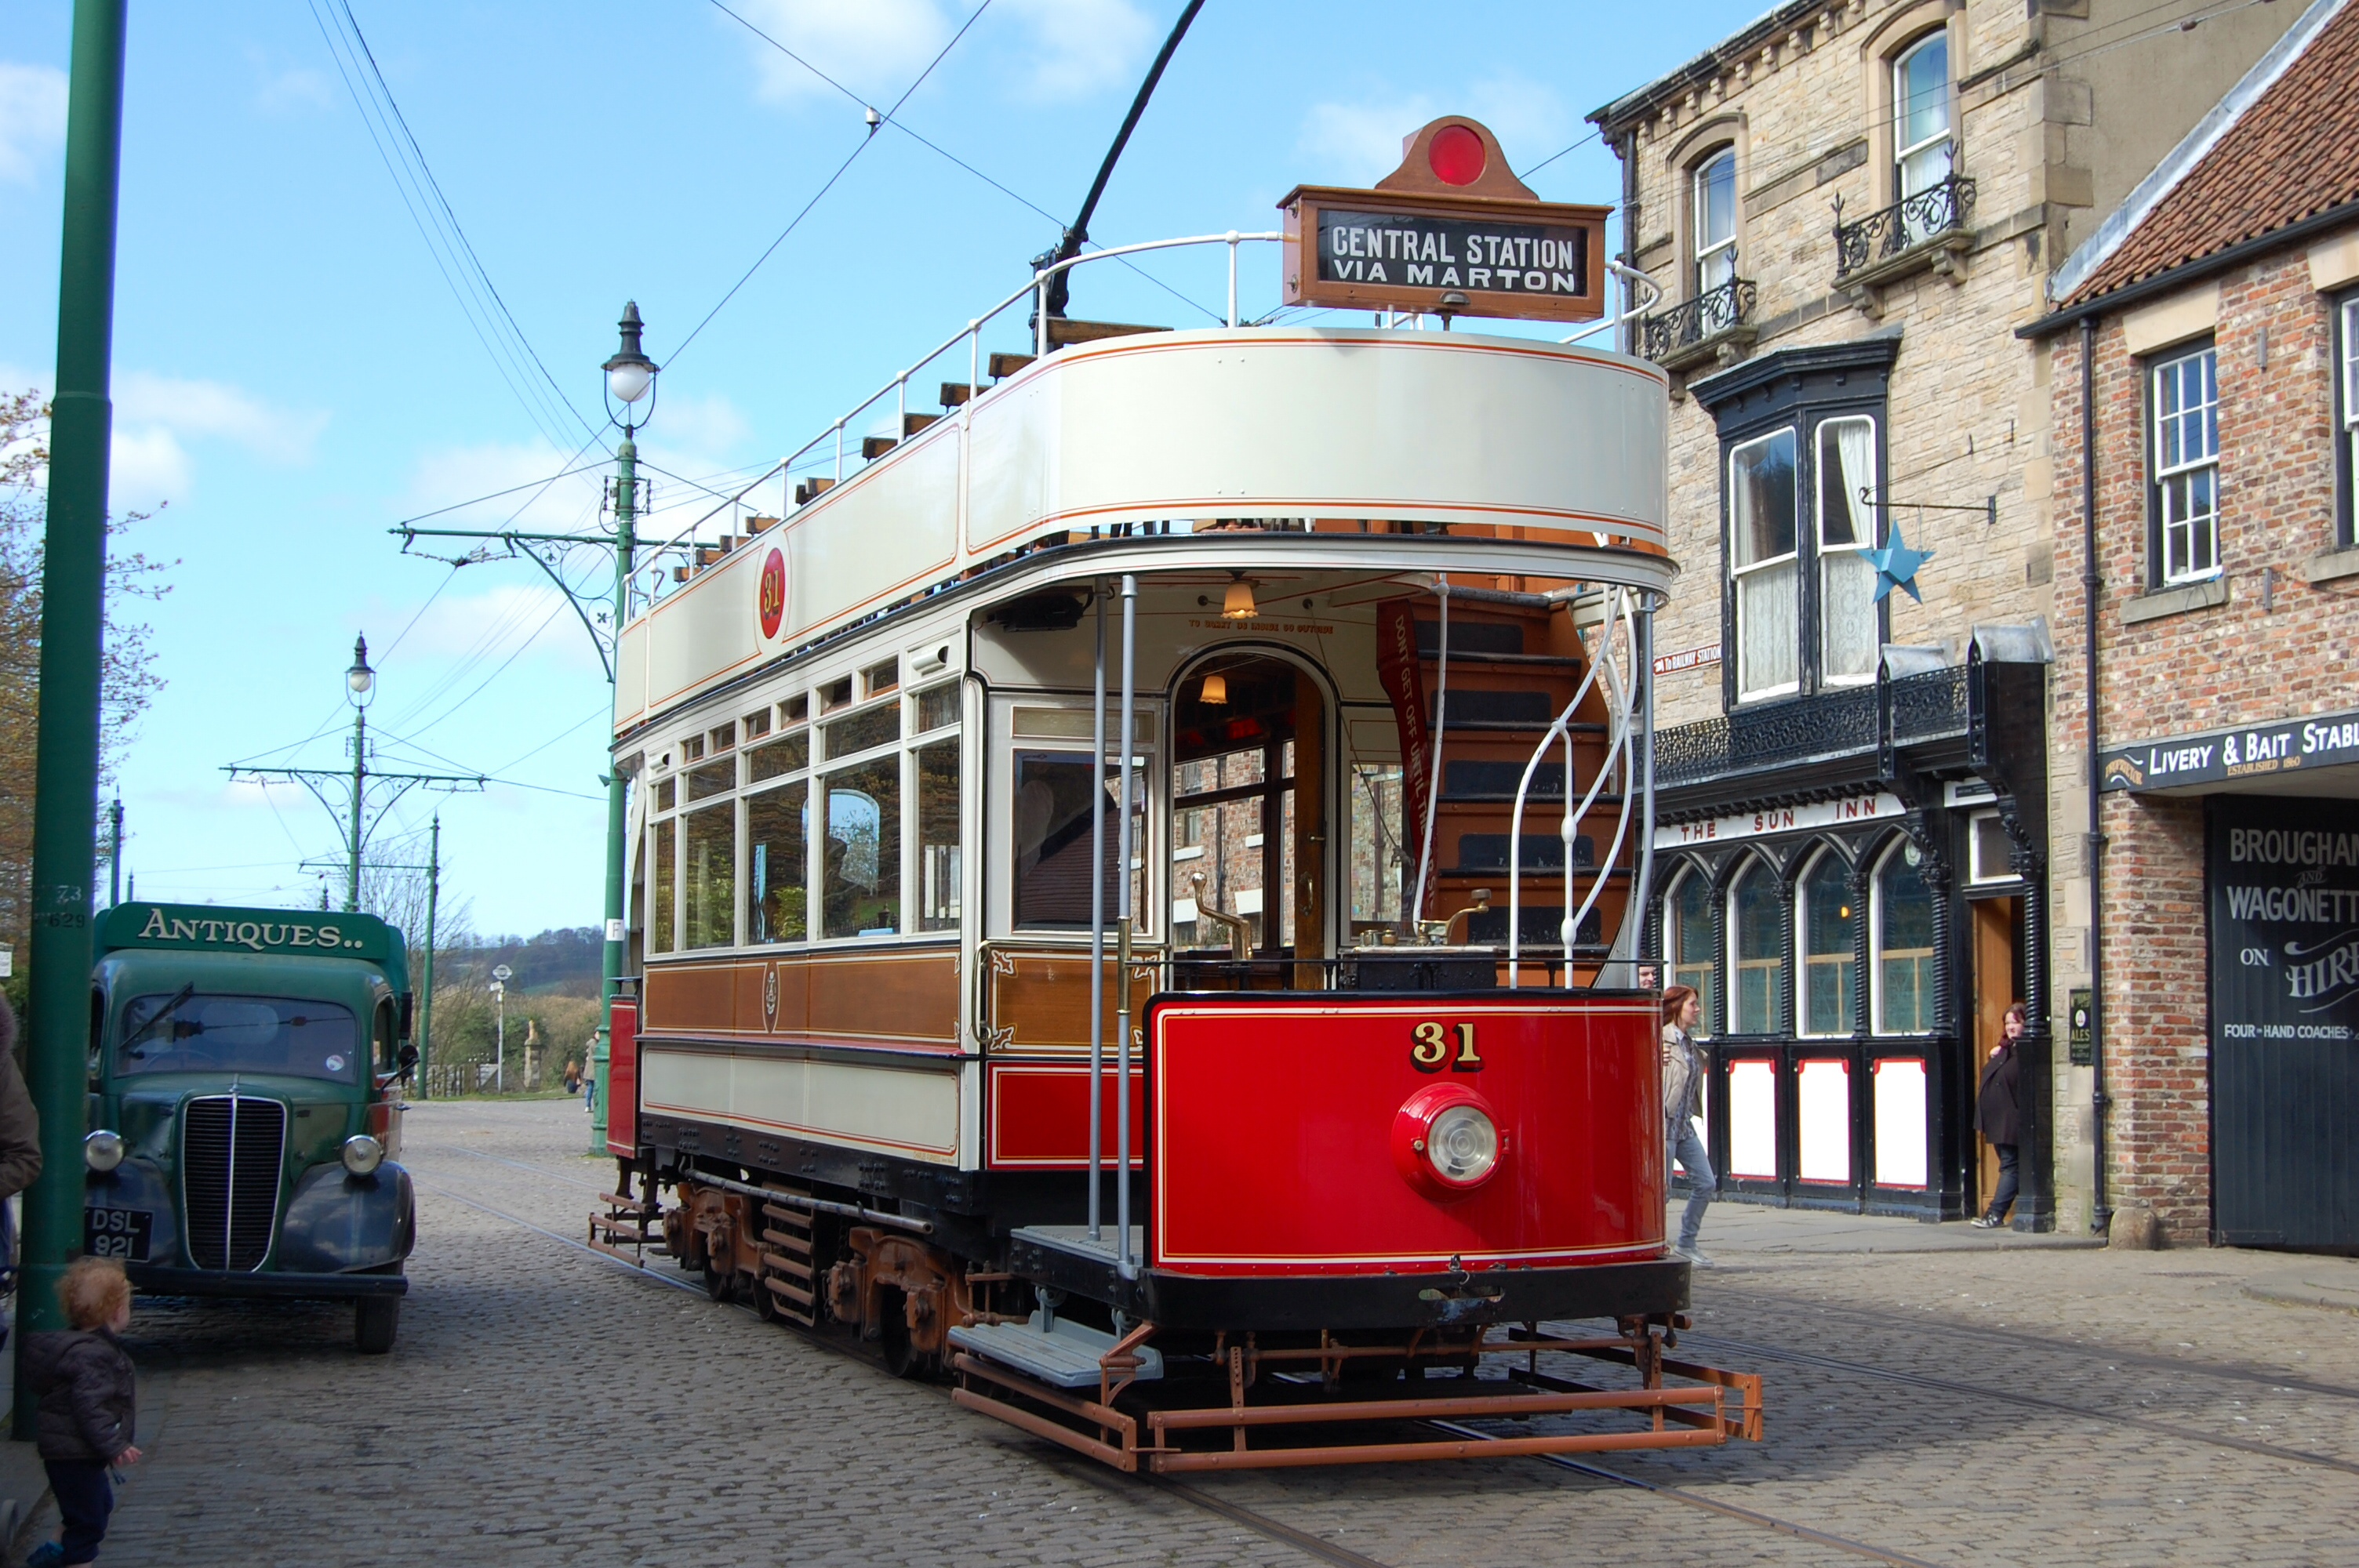 No31 Tram to Central Station